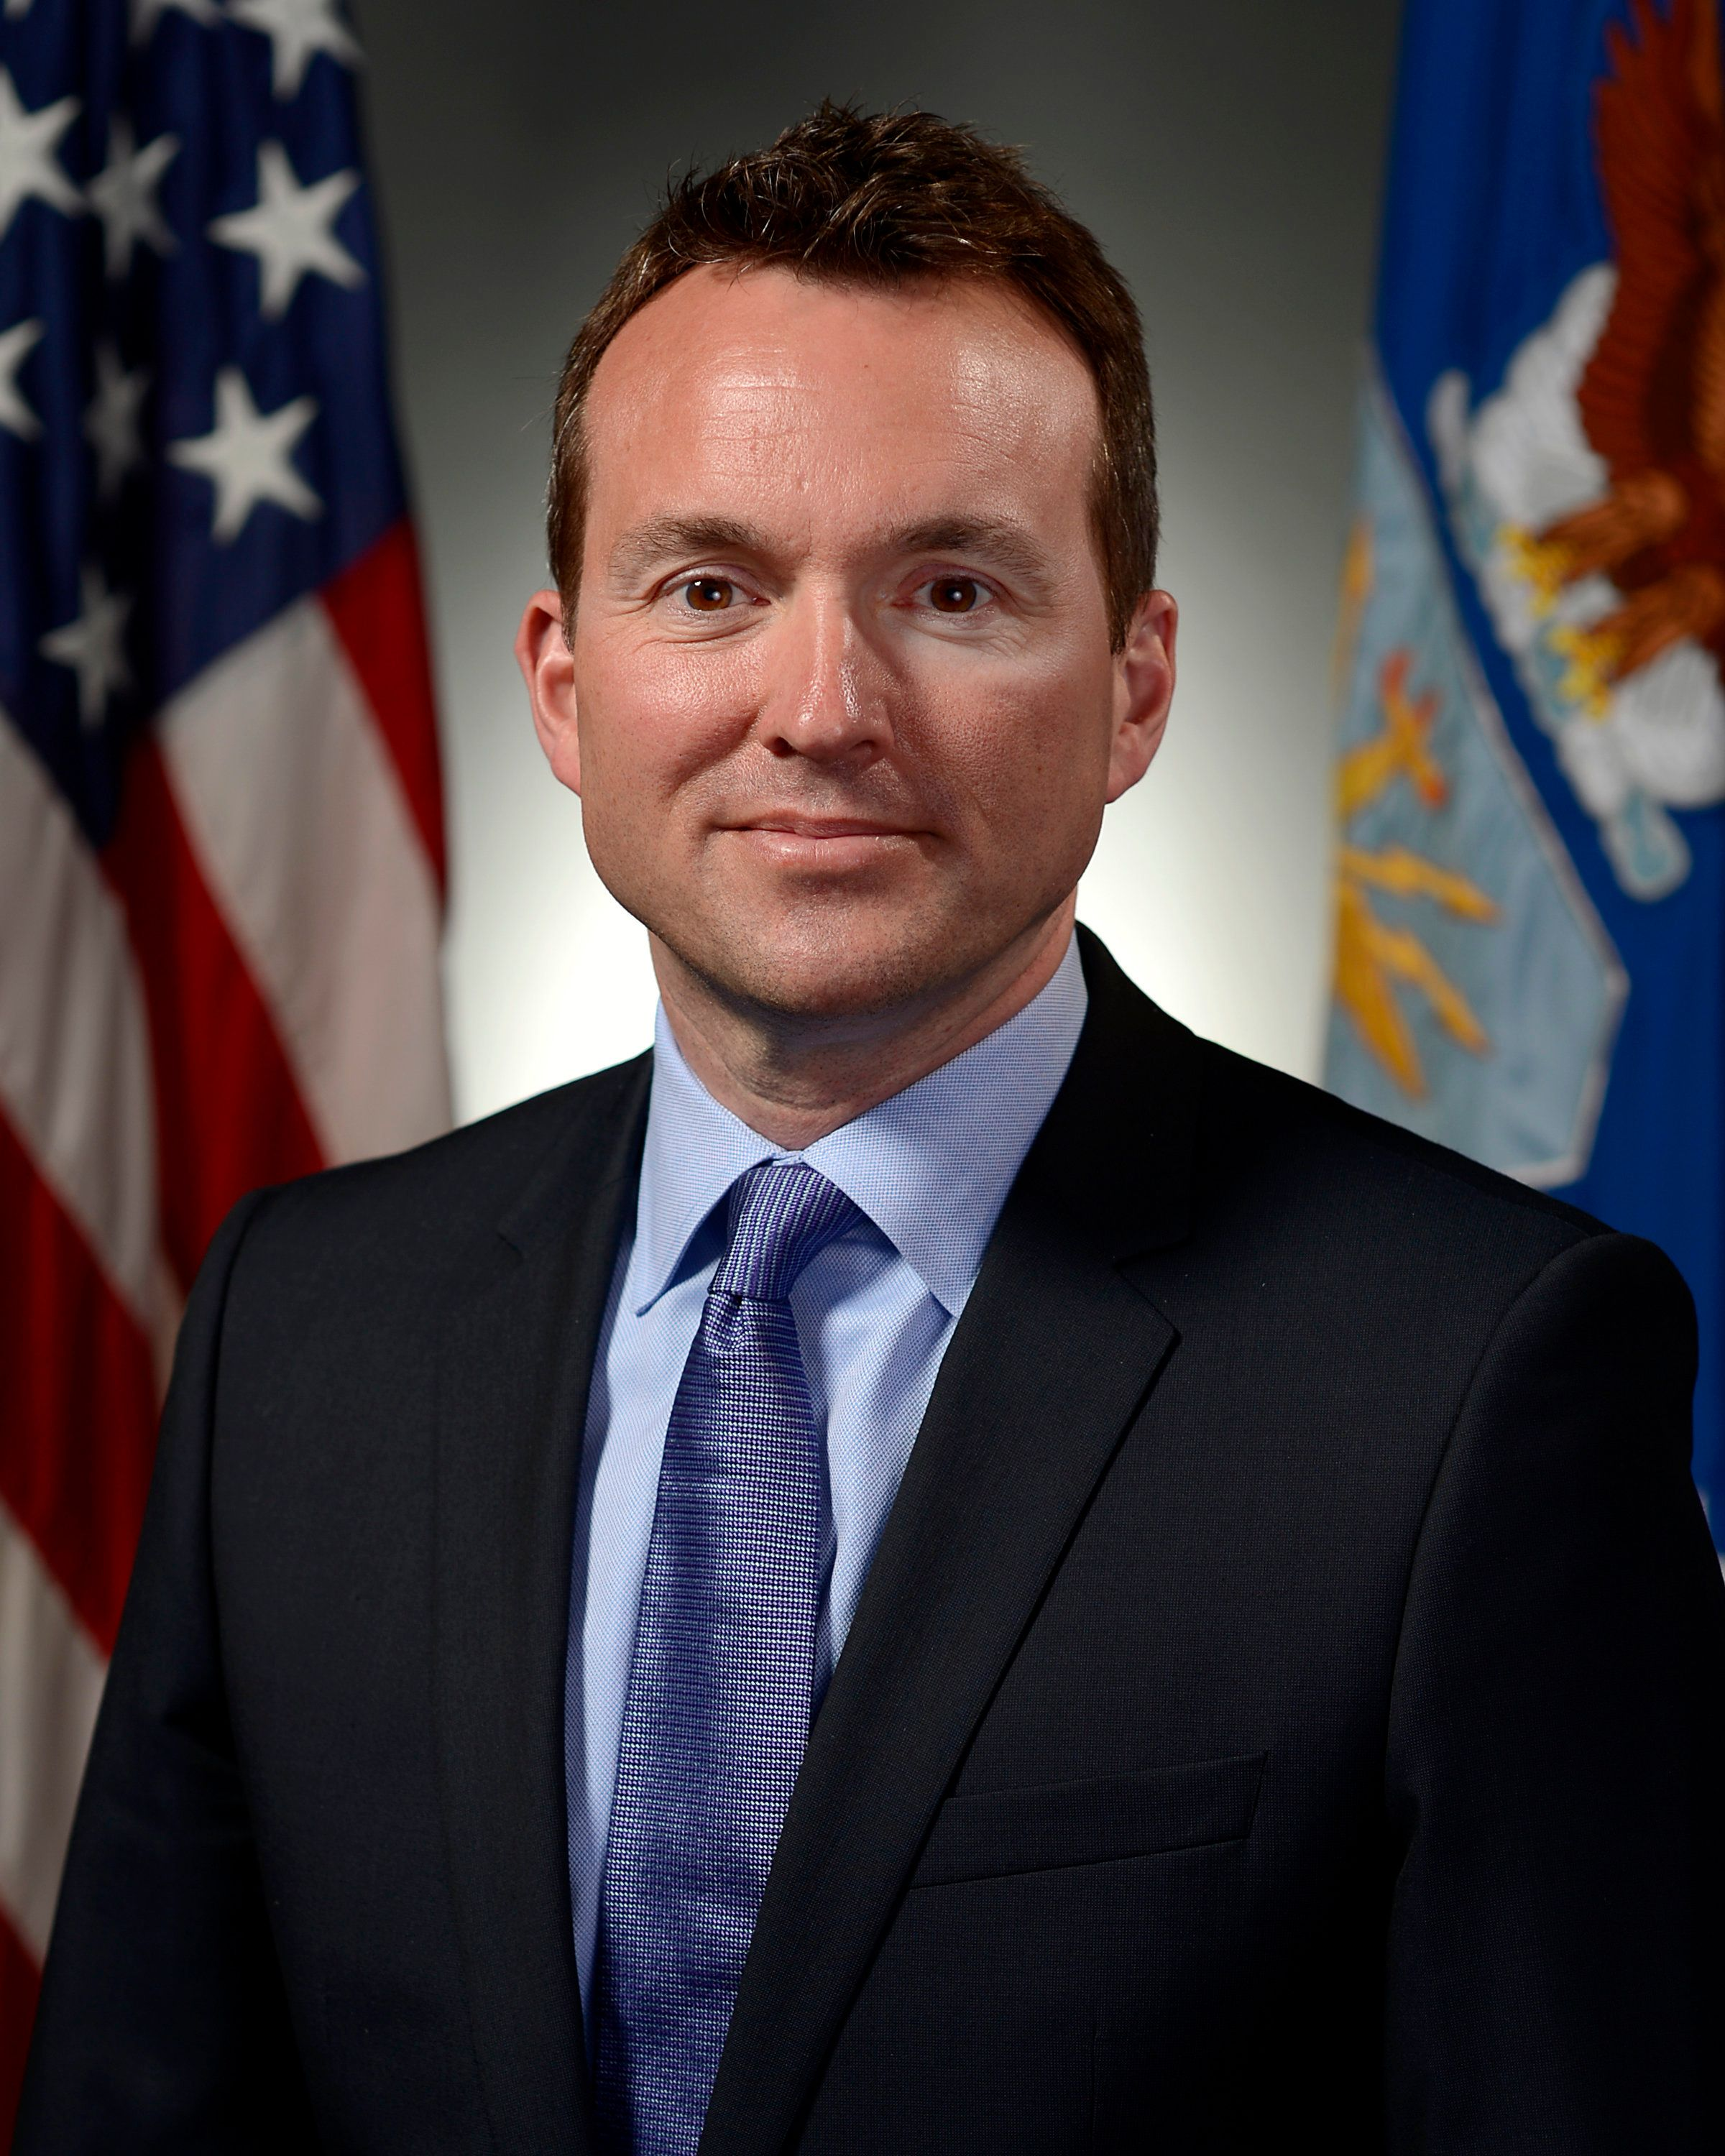 The president plans to nominate Eric Fanning (above) as Army secretary.